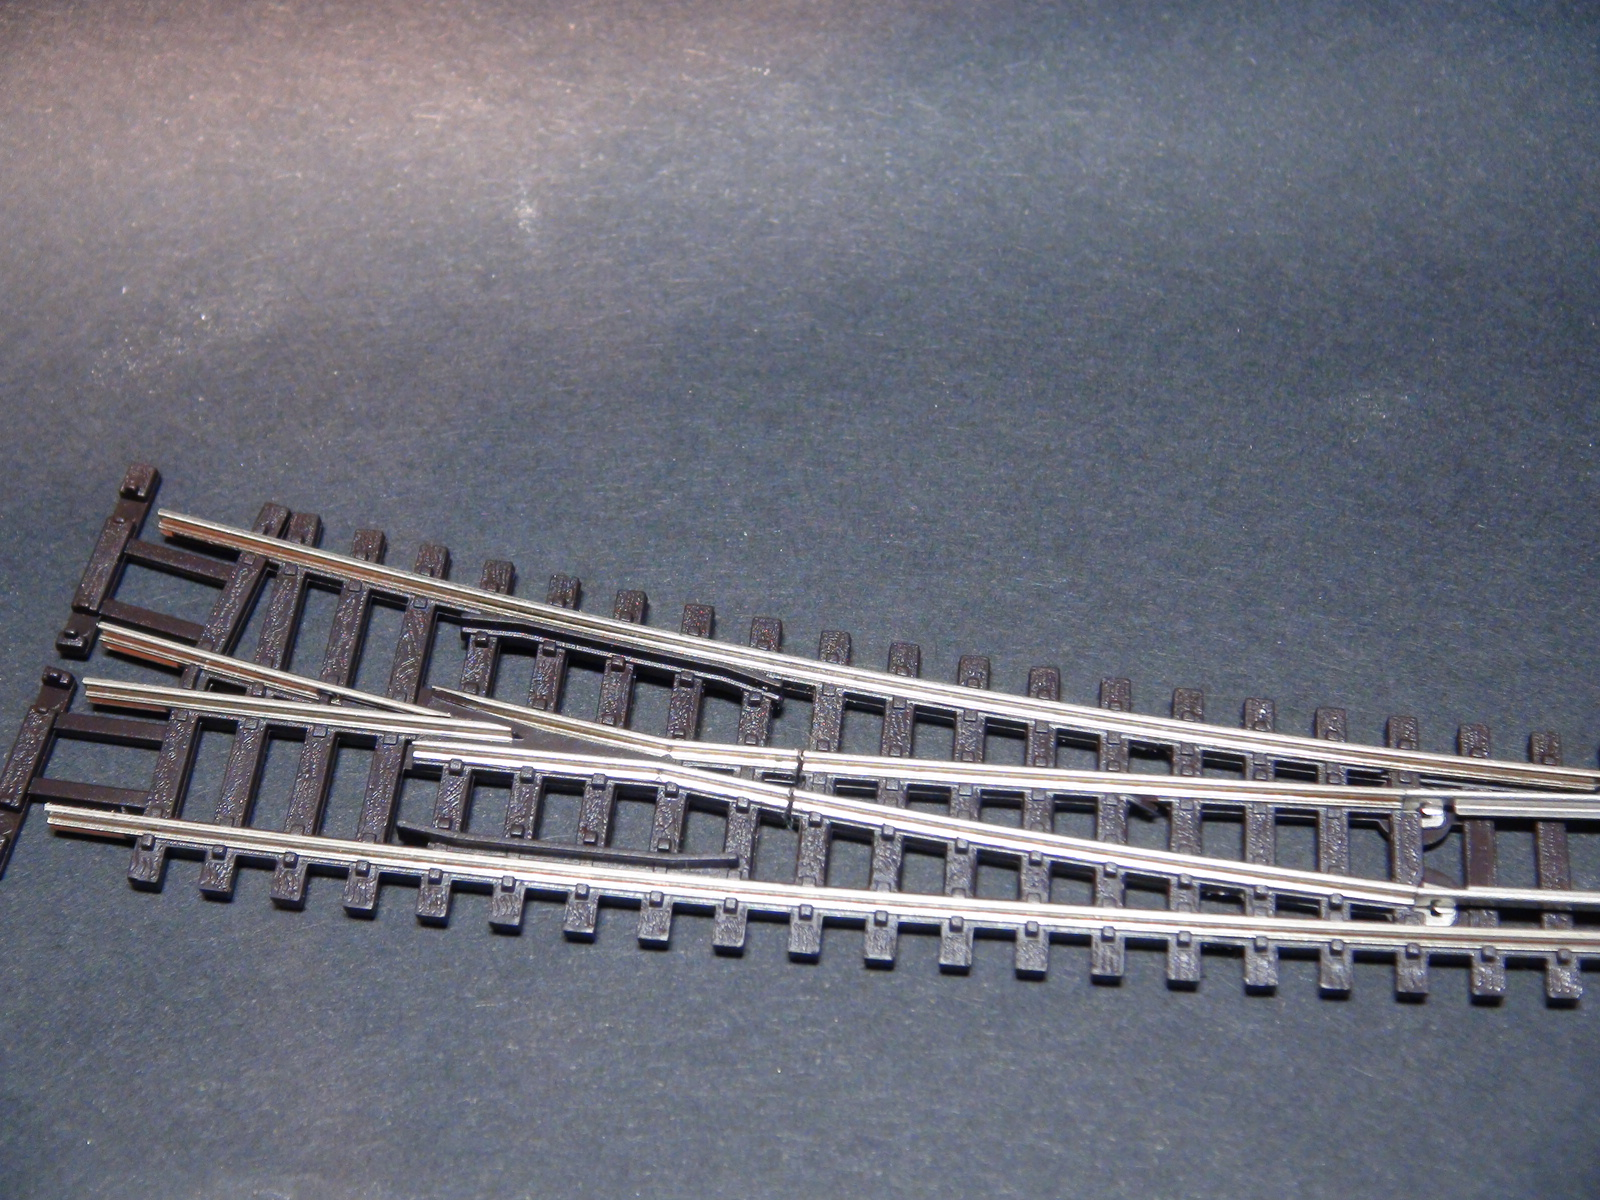 medium resolution of  code 55 n scale points dcc friendly there are plenty of wiring diagrams but not many photos so i have put some together to show how dummies like me